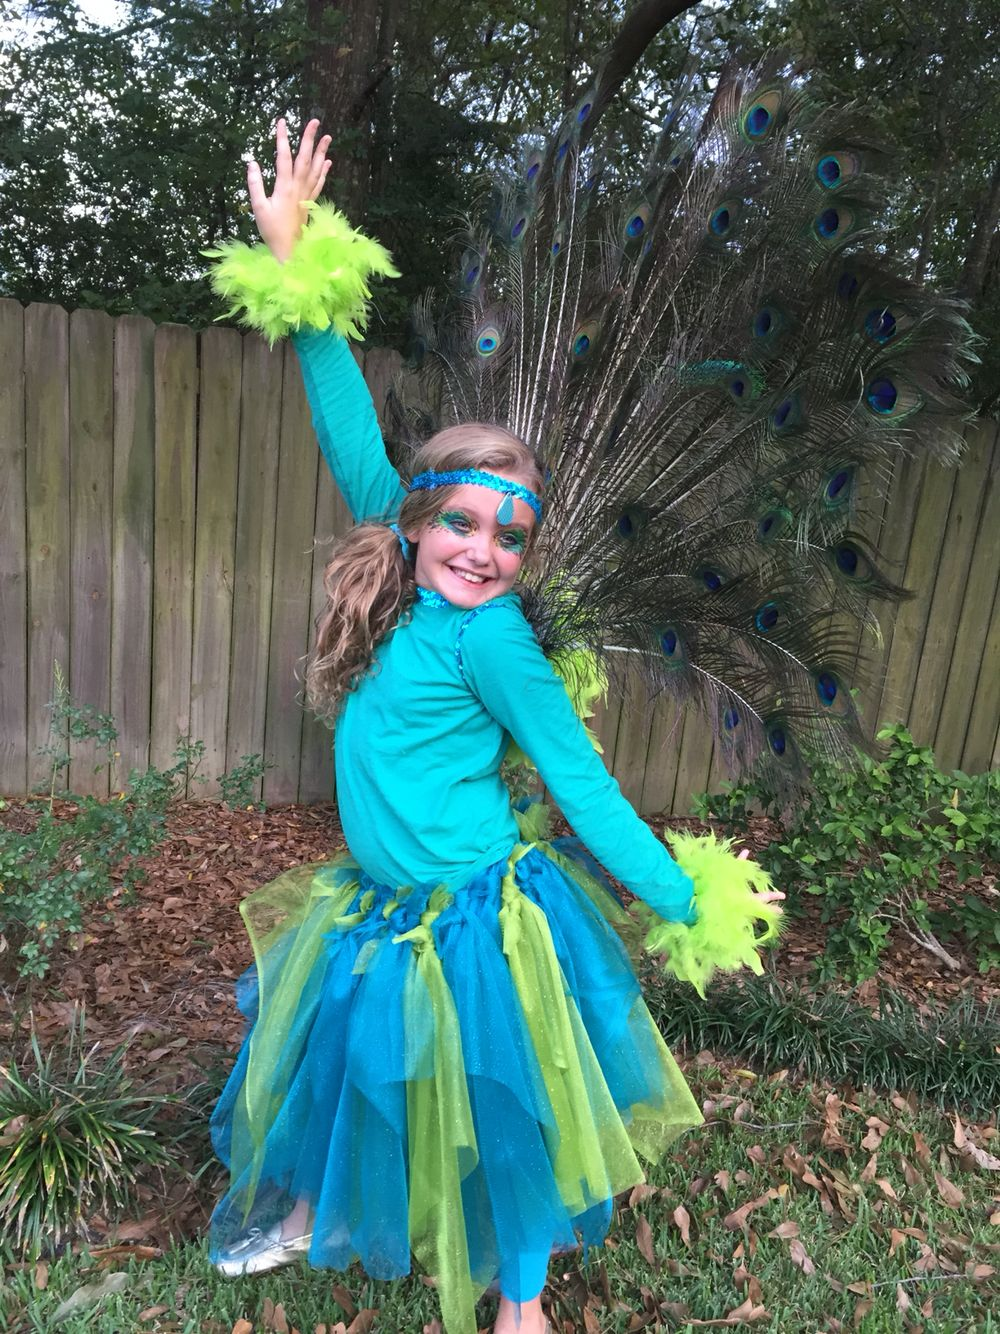 """Peacock costume diy...my daughter loved this and it was easy to make! Hot glued elastic sequins and feather boa to t-shirt, made tulle tutu, built strap-on """"tail"""" with feathers, boa, and cardboard base!!"""